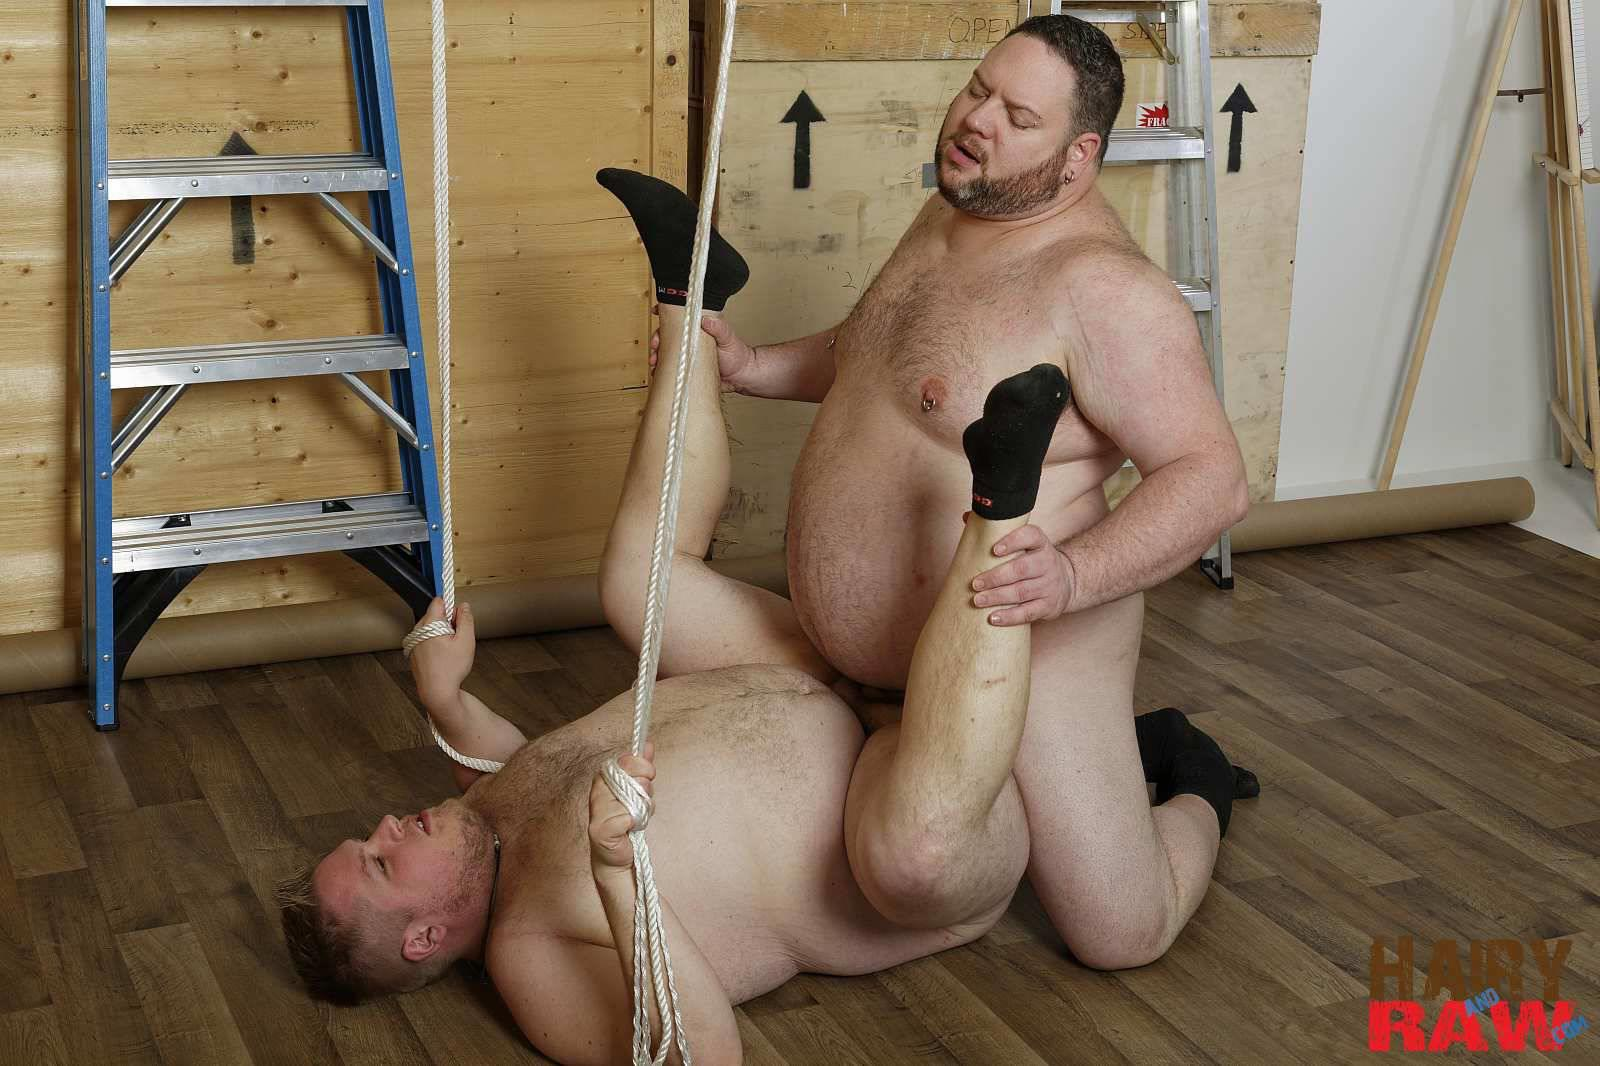 Hairy-and-Raw-Bear-Waters-and-Teddy-Osborne-Big-Hairy-Chubs-Fucking-Bareback-Amateur-Gay-Porn-12 Super Chubs Fucking Bareback At The Warehouse